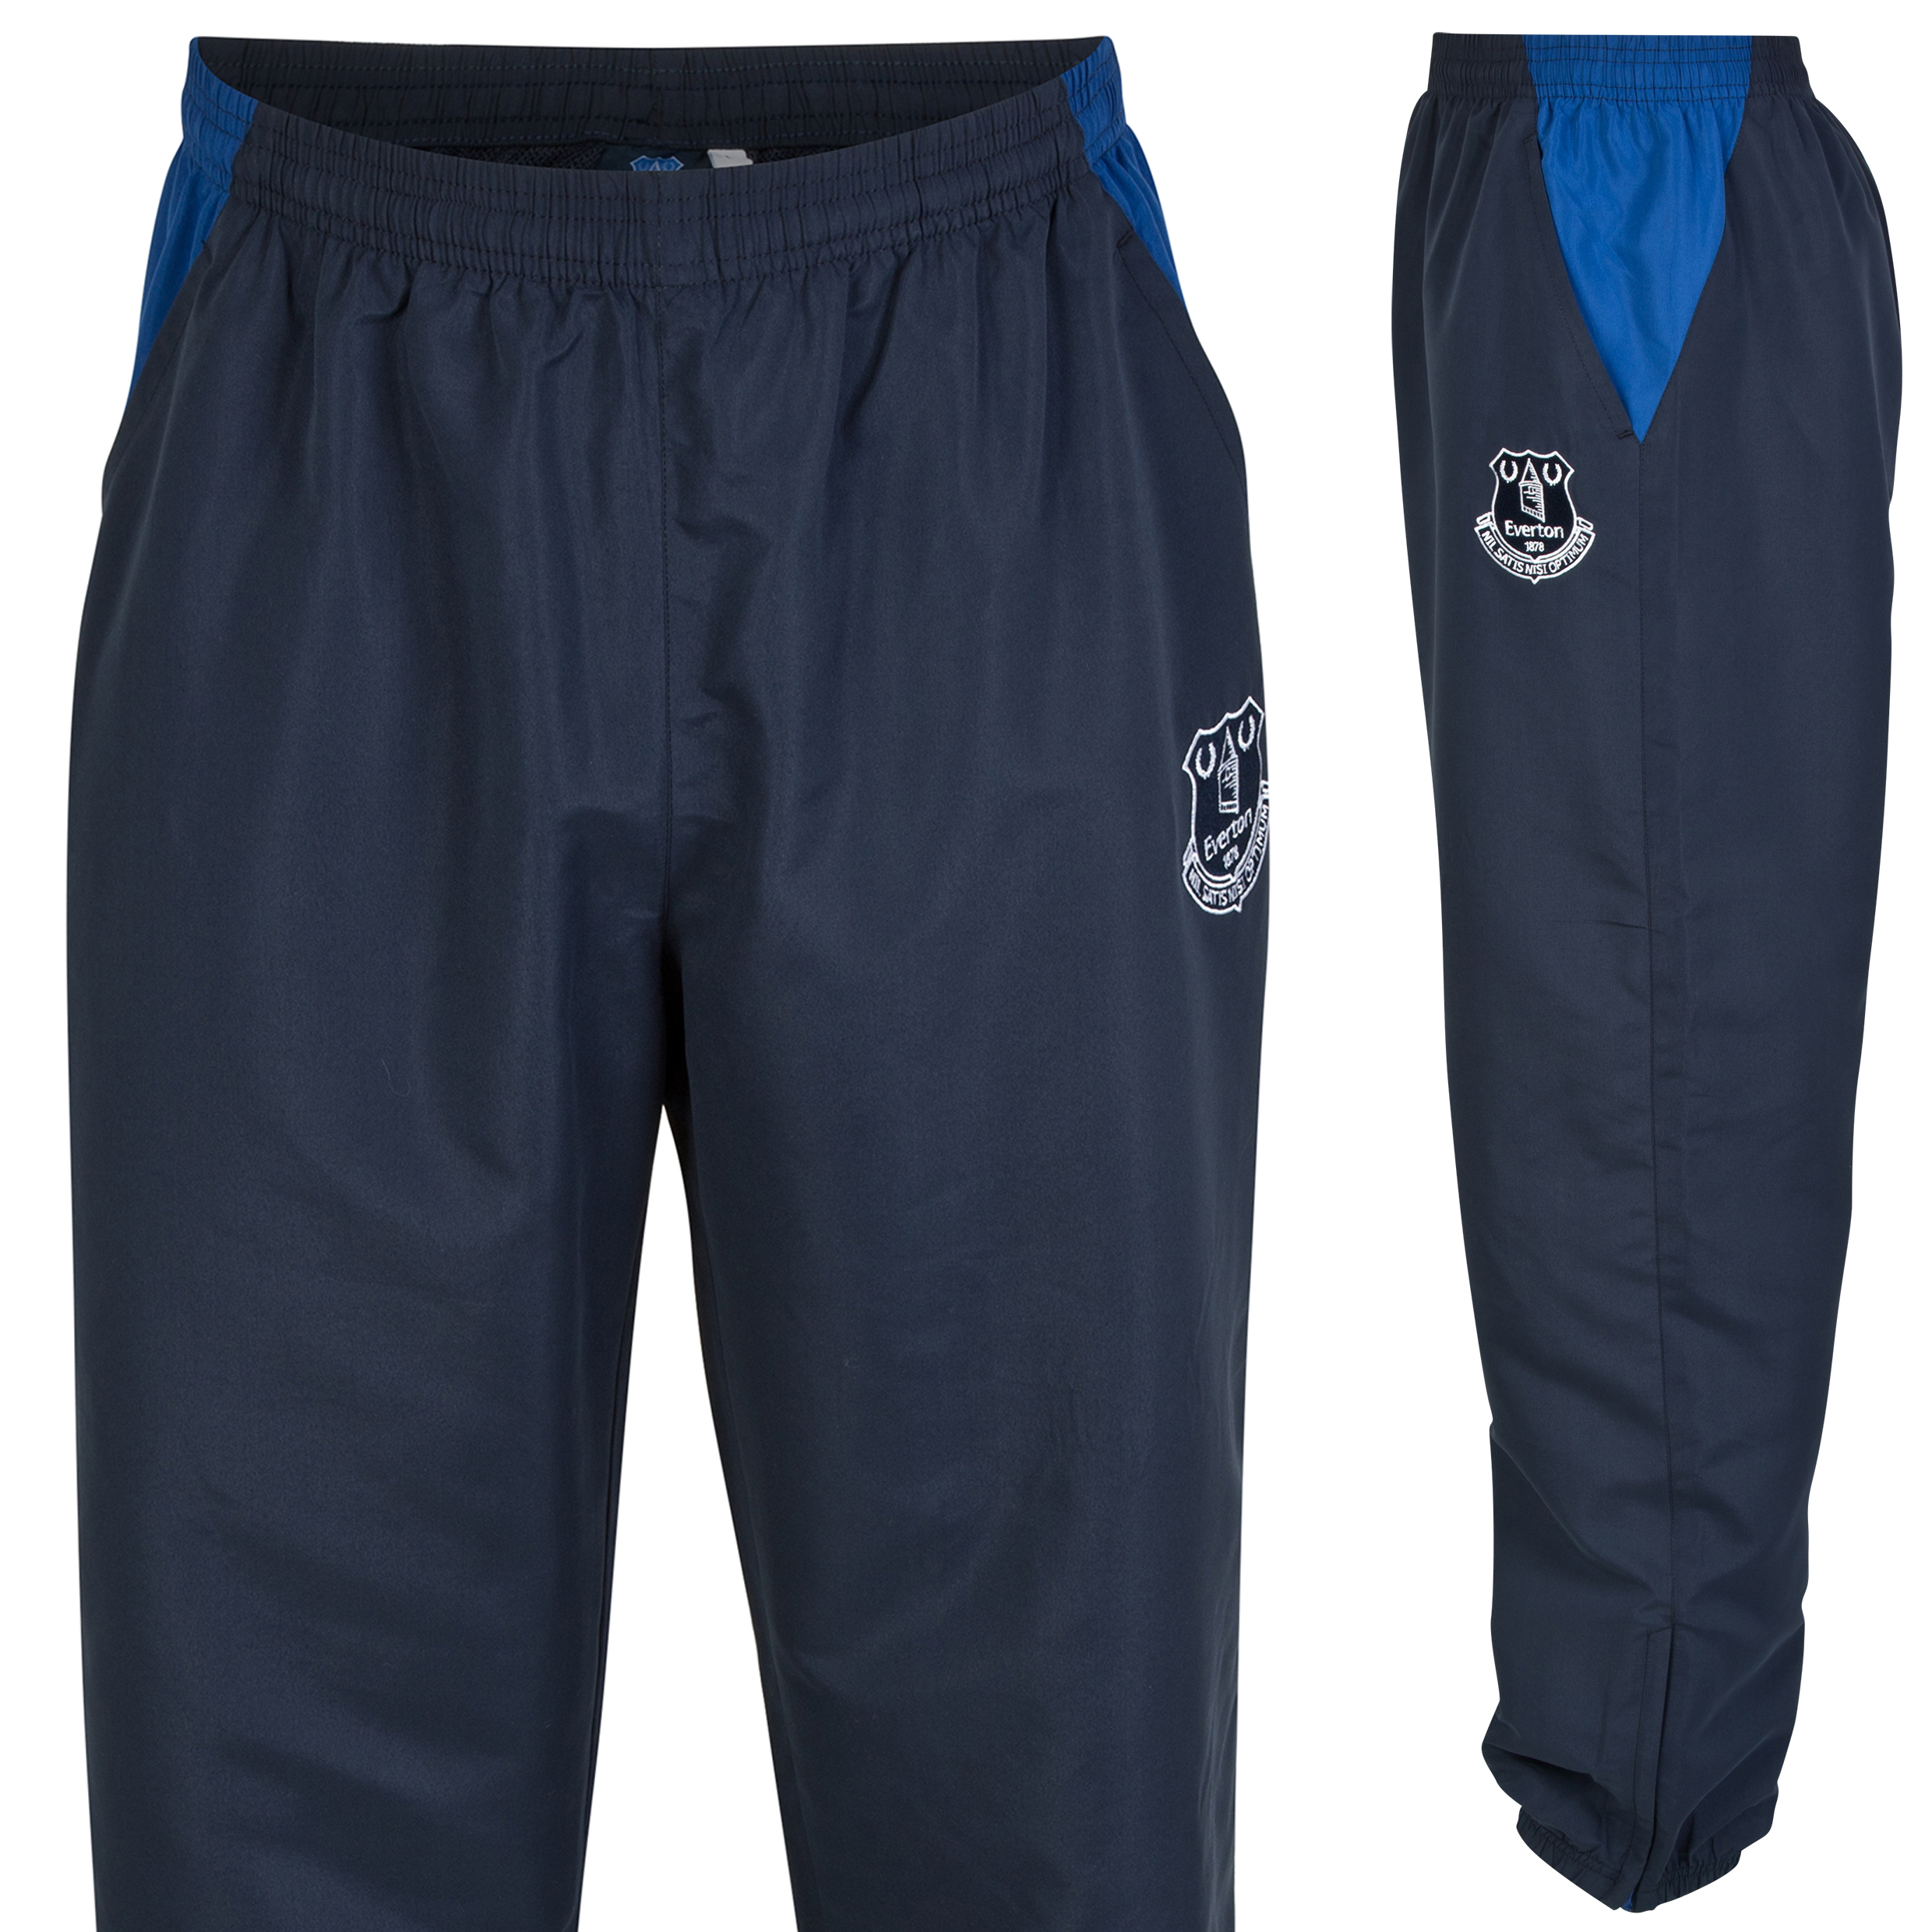 Everton Essential Woven Track Pants - Navy - Older Boys